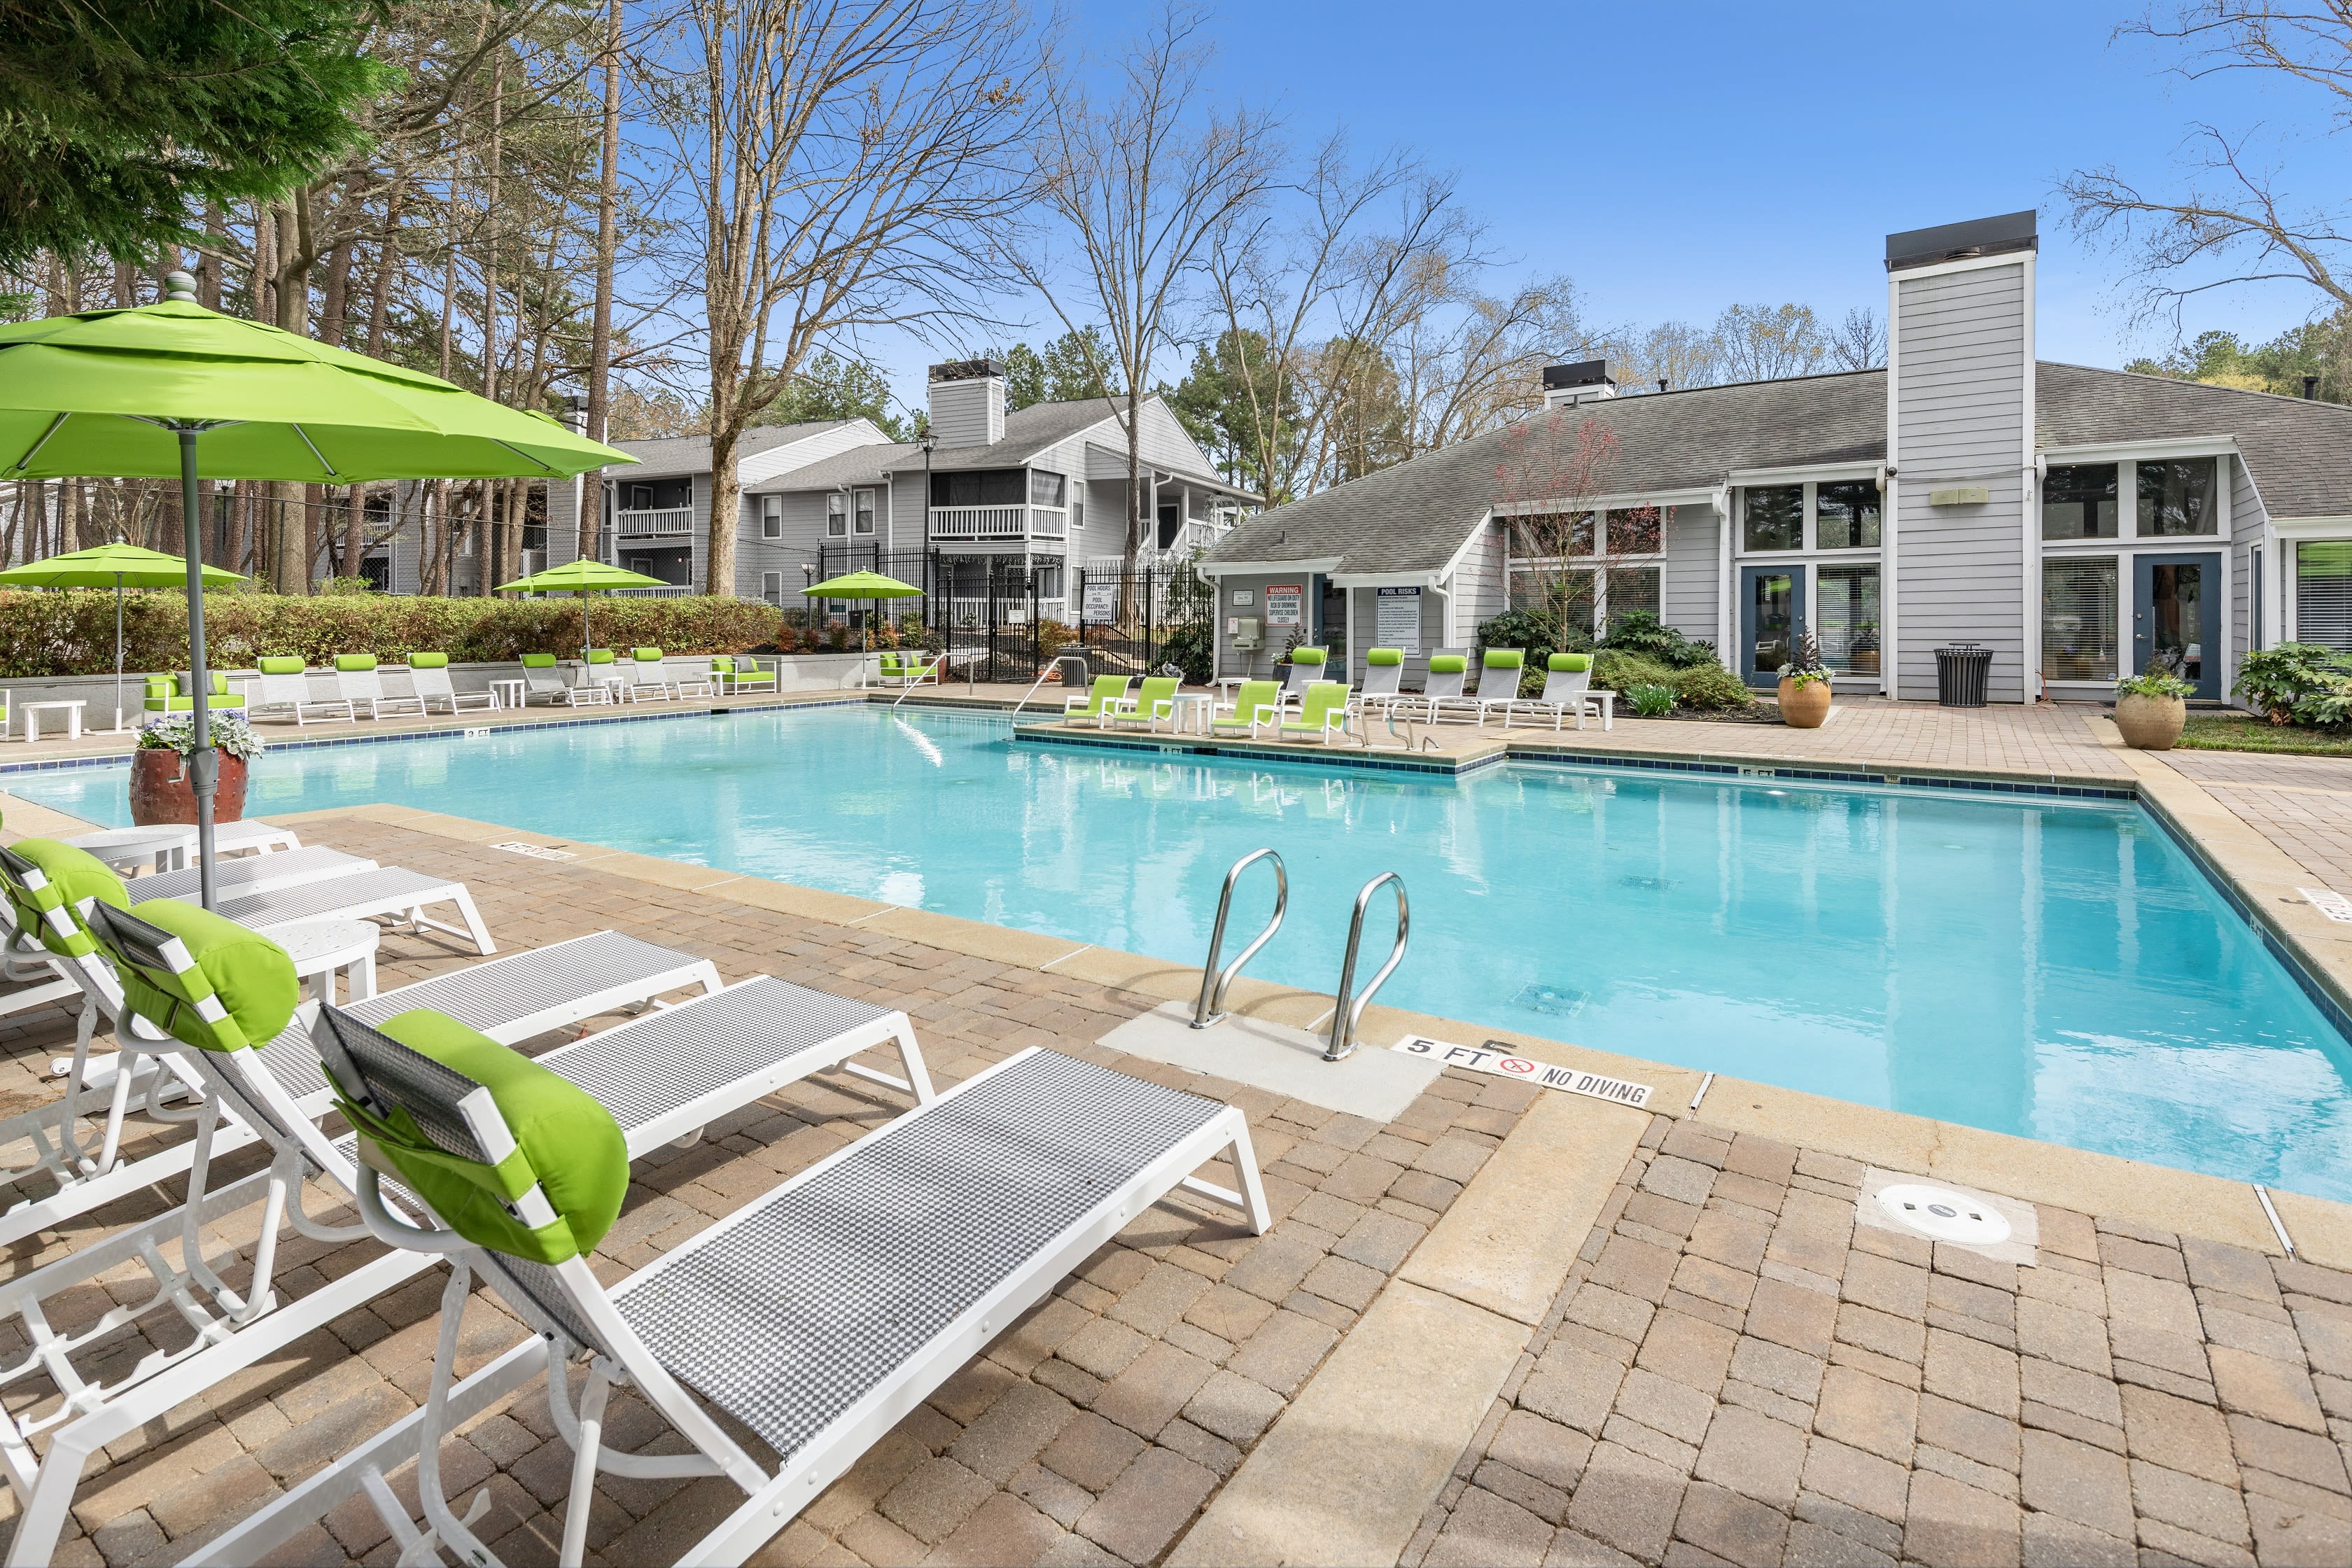 A large pool at The Franklin in Marietta, GA